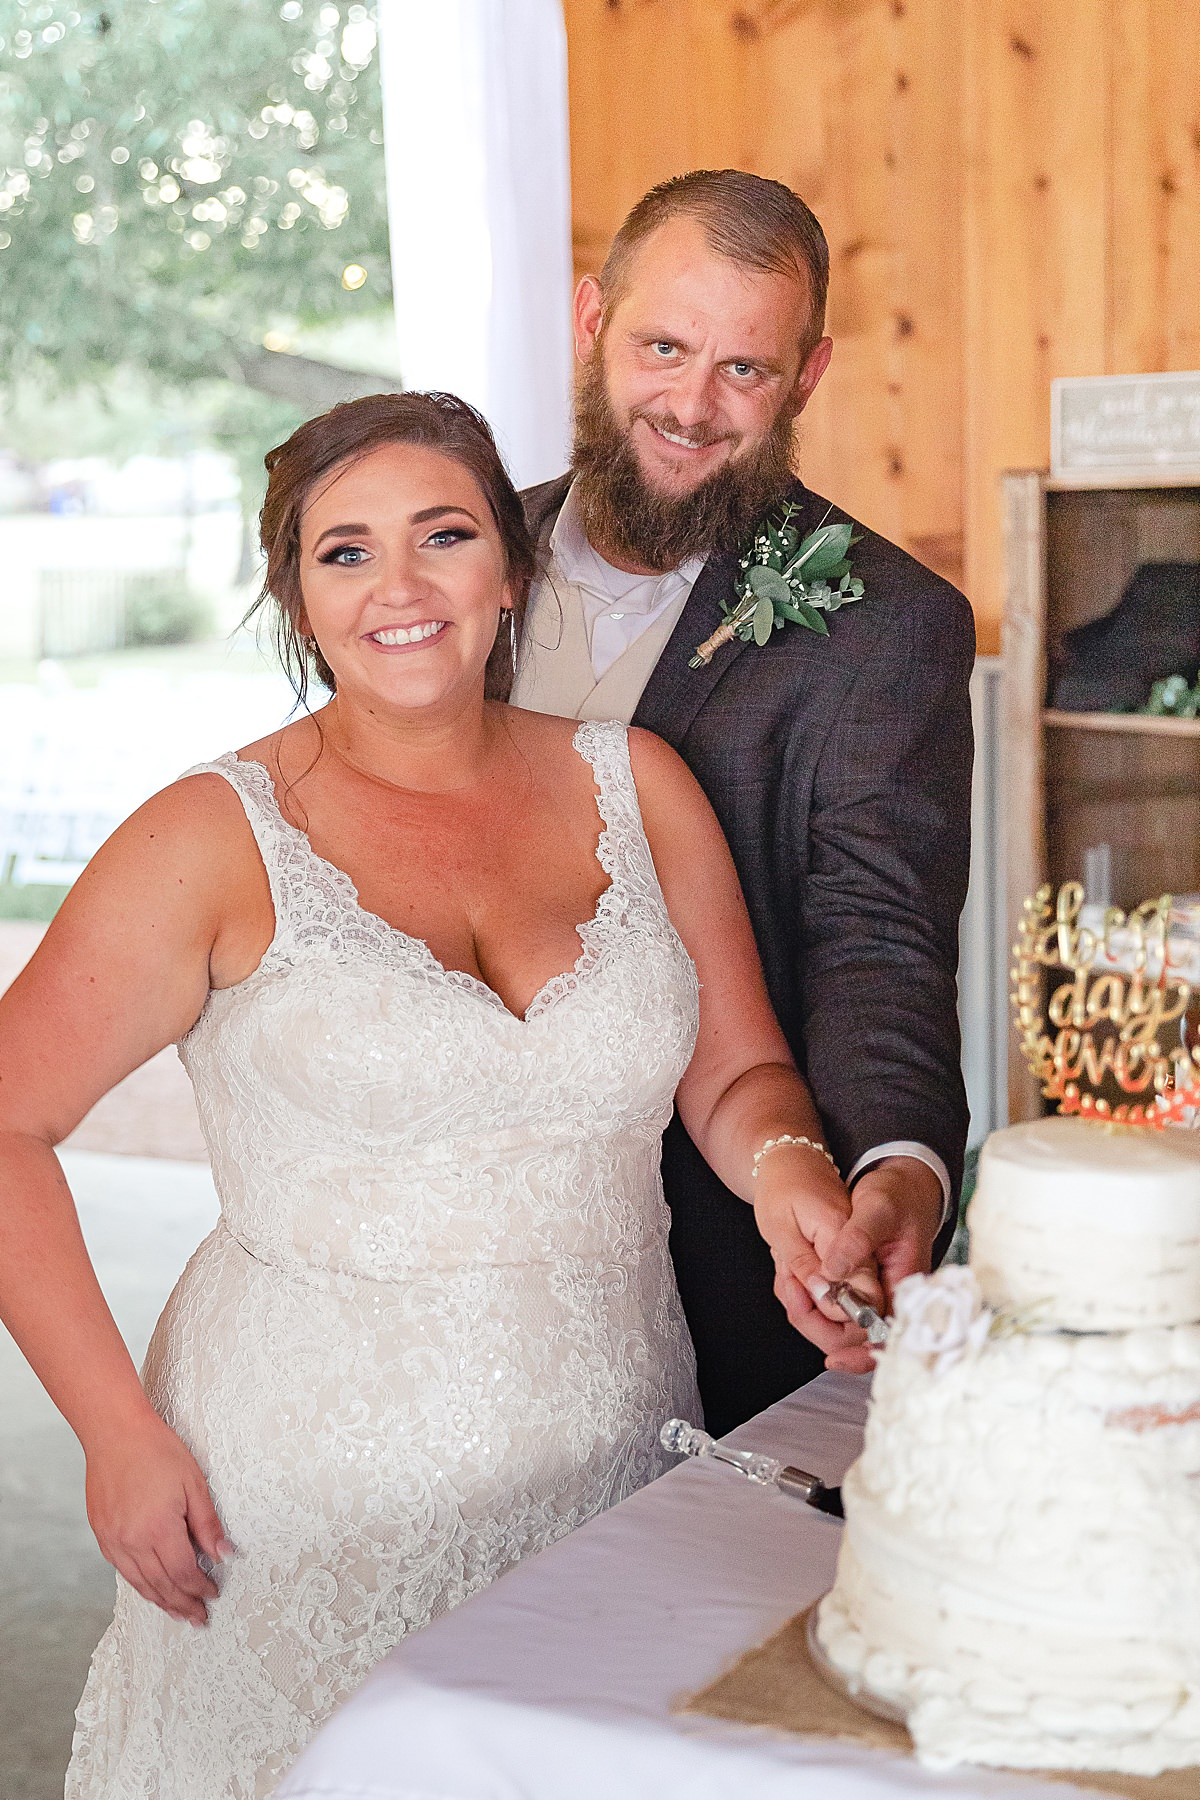 Rustic-Texas-Wedding-Hollow-Creek-Ranch-Carly-Barton-Photography_0061.jpg